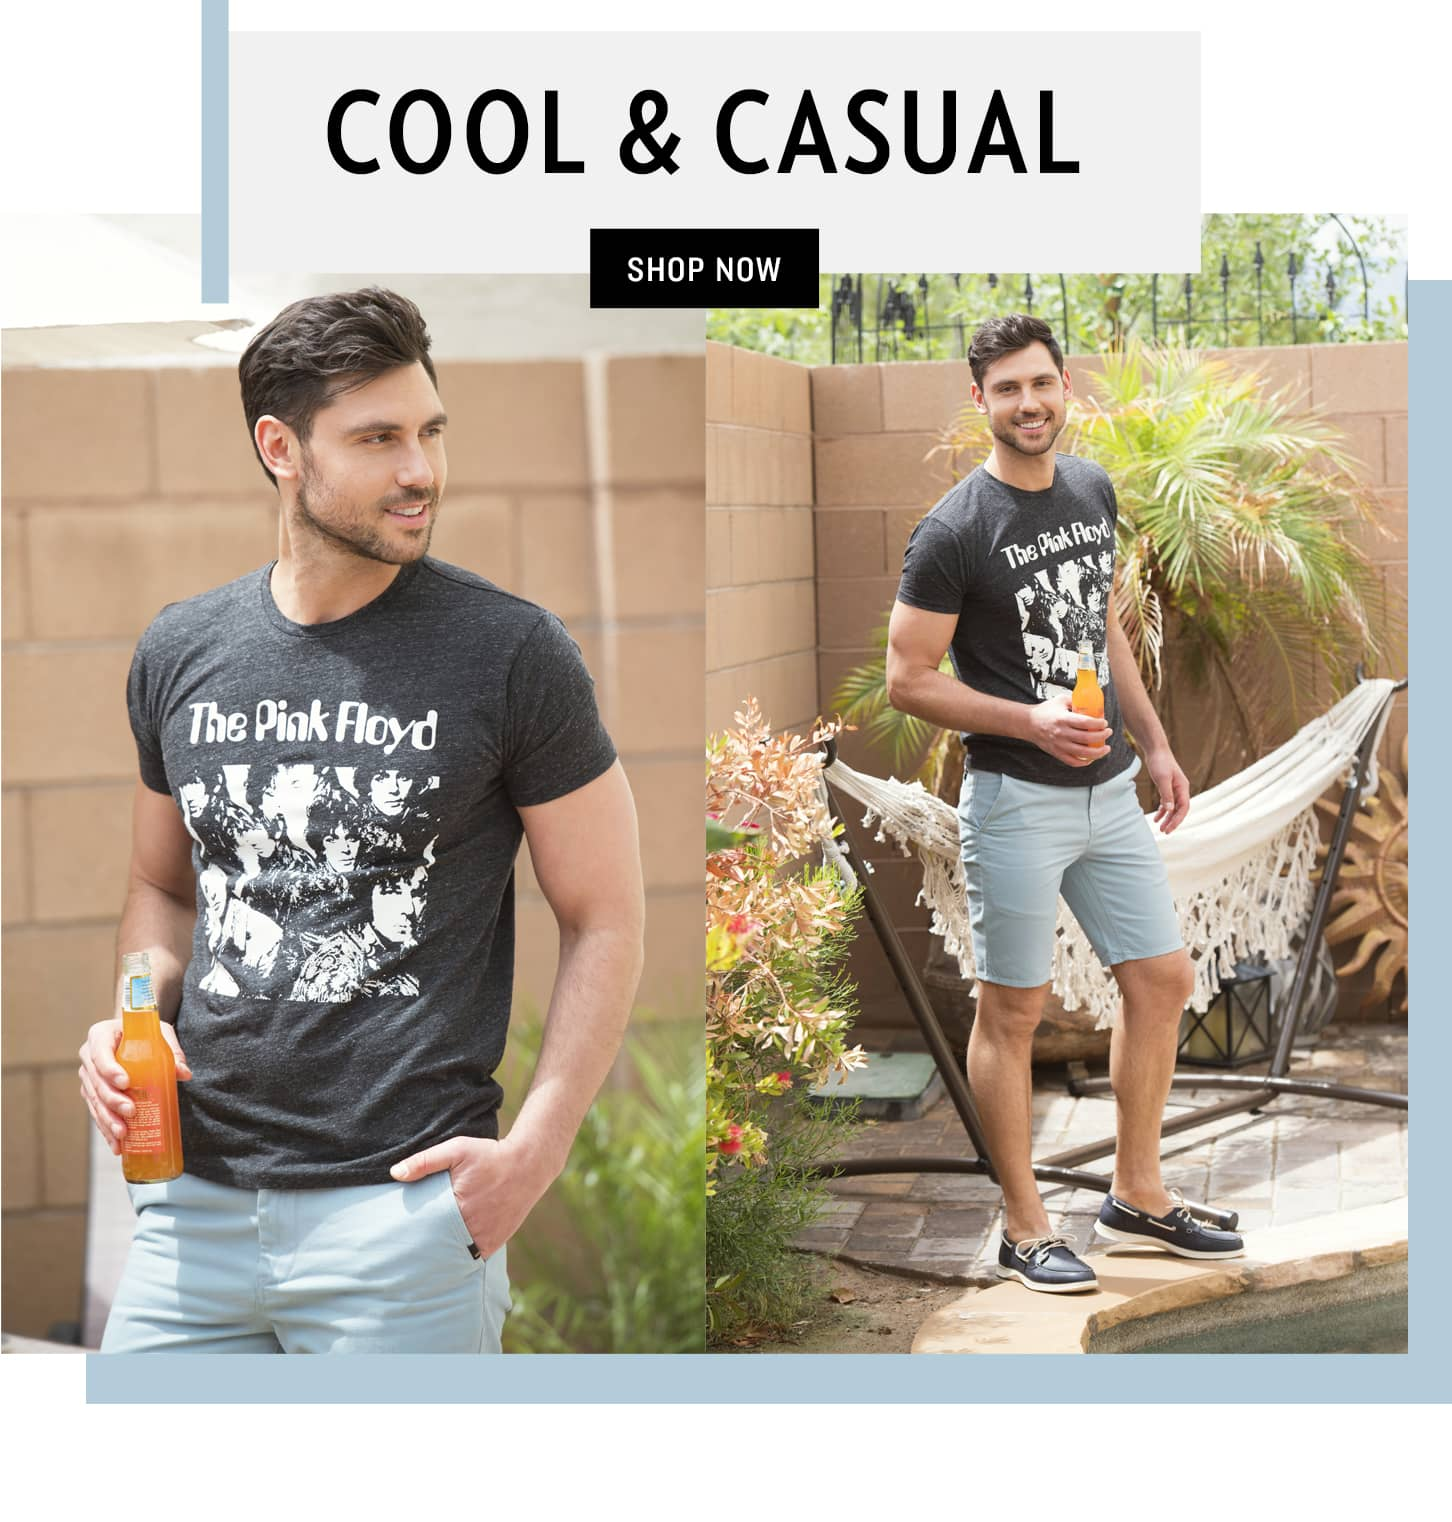 Shop Cool & Casual Men's Styles